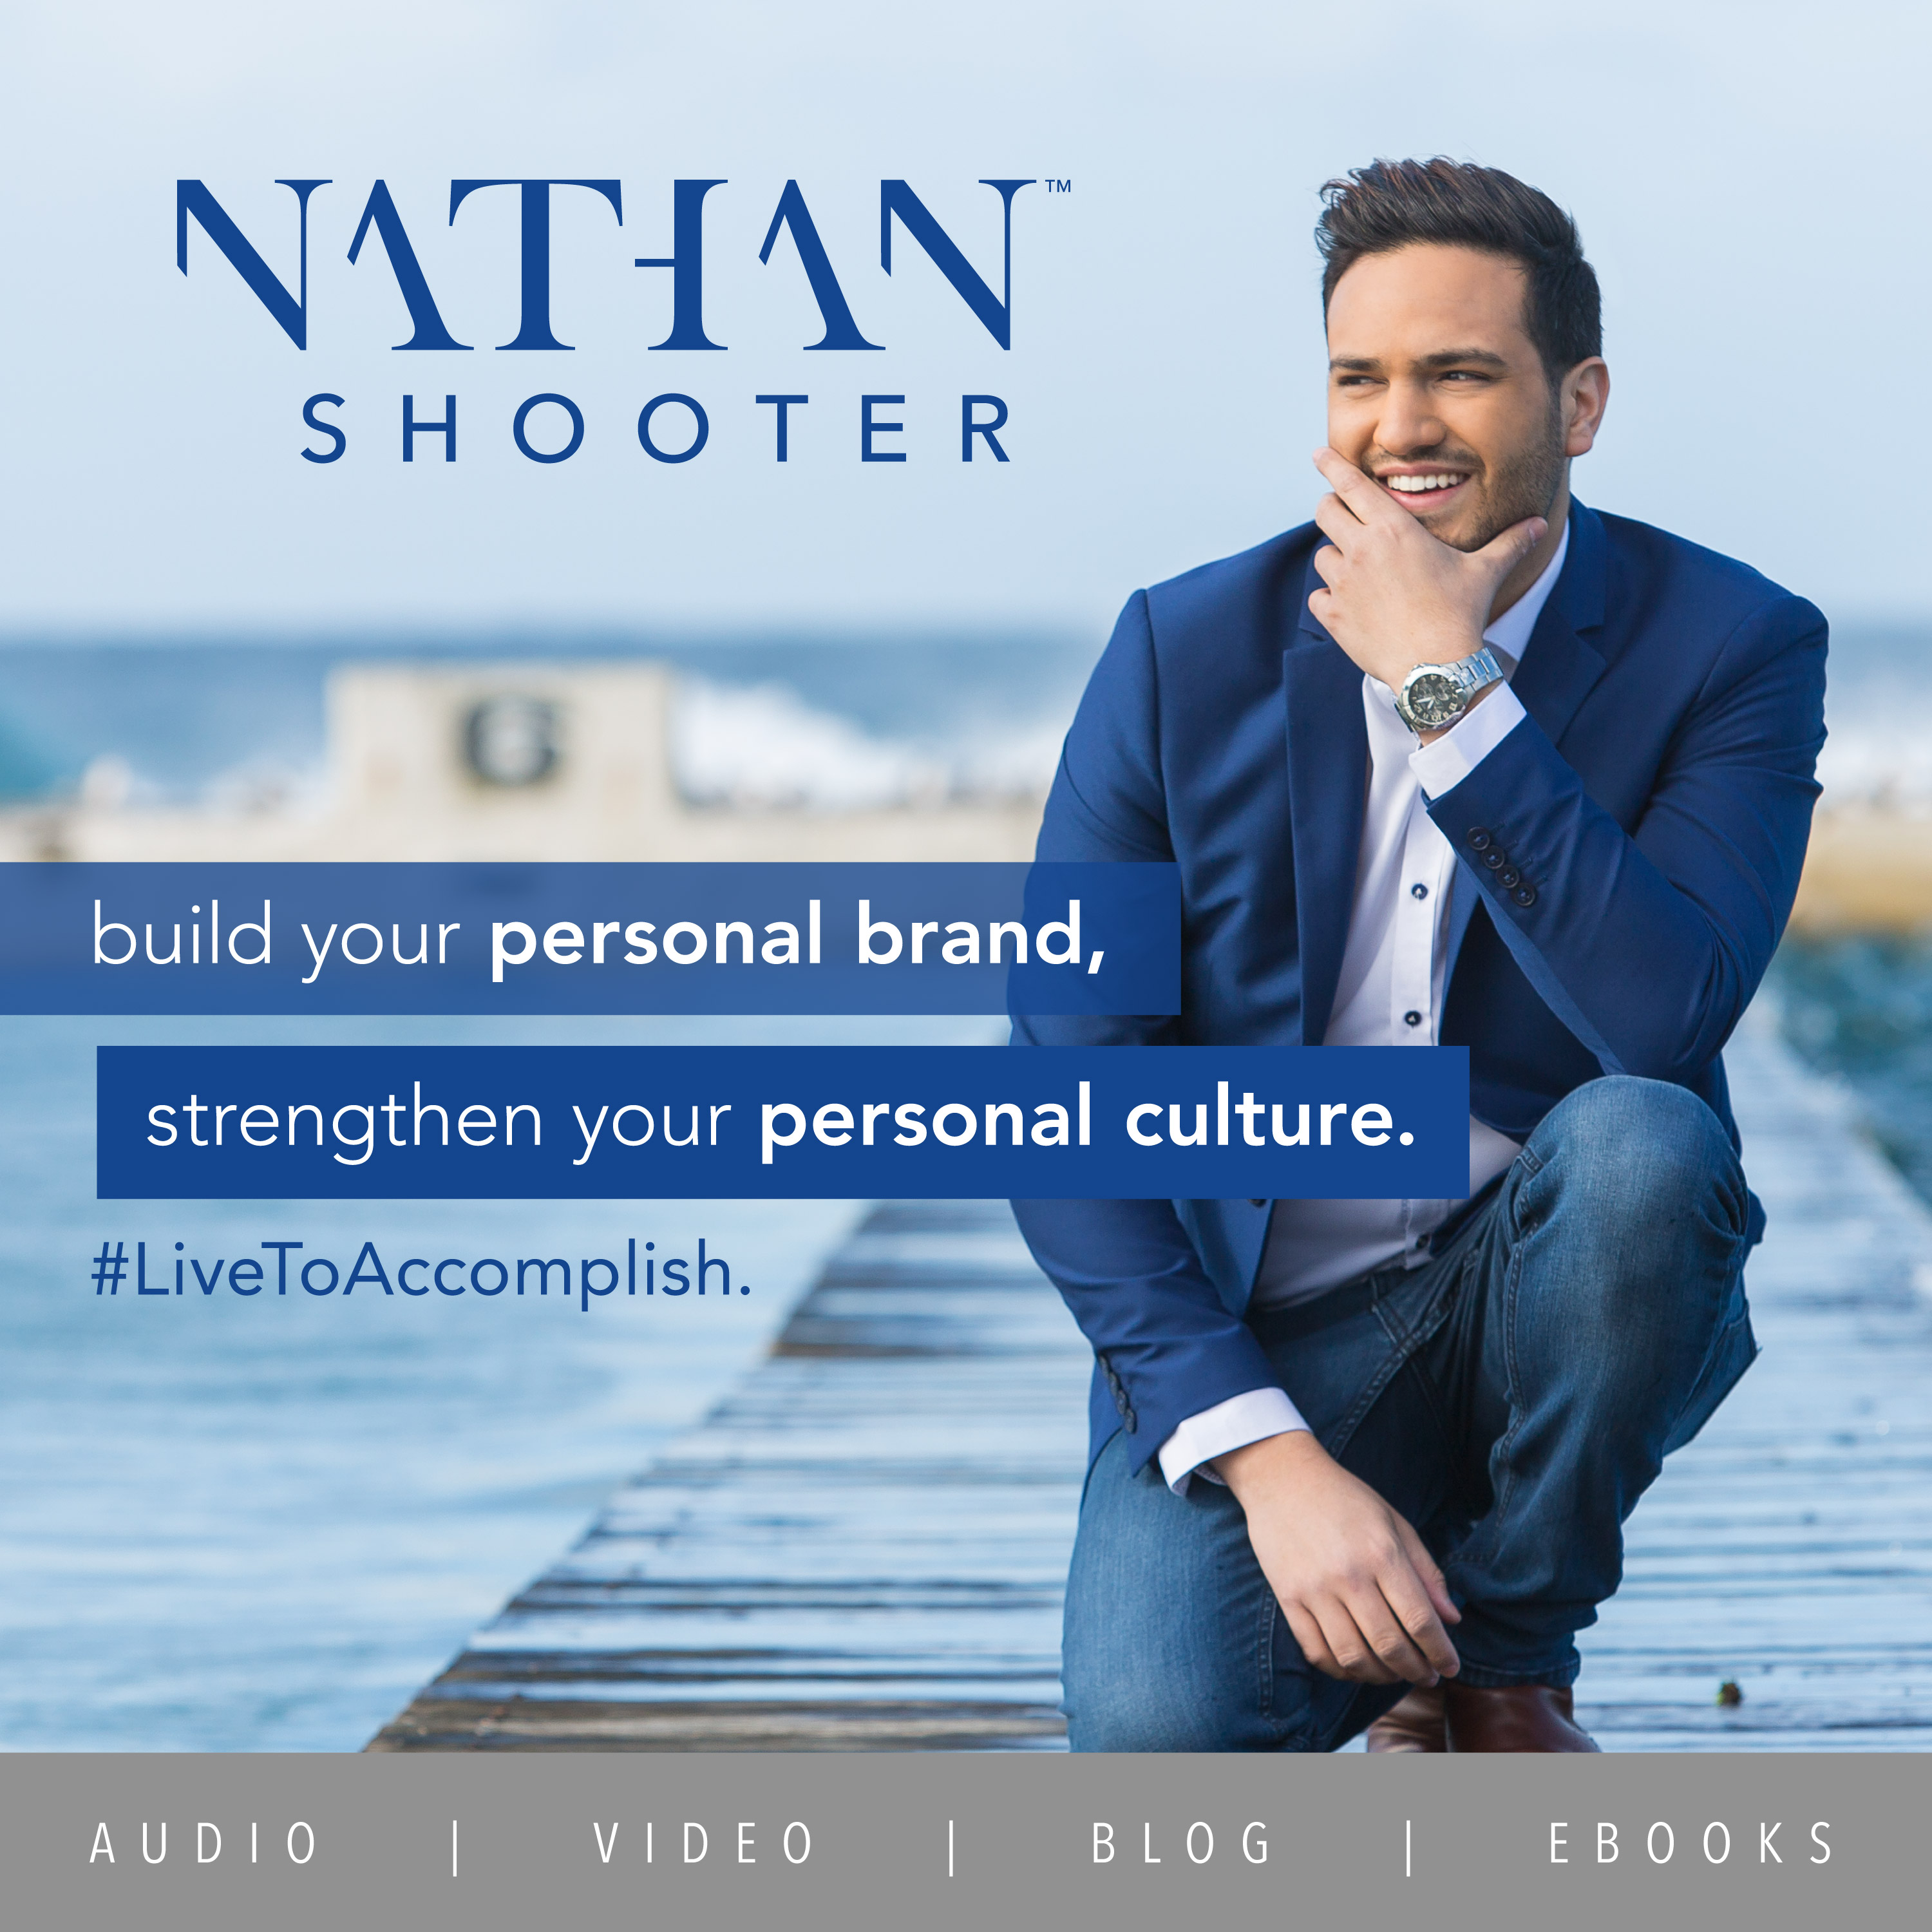 Nathan Shooter | Brandhood.co